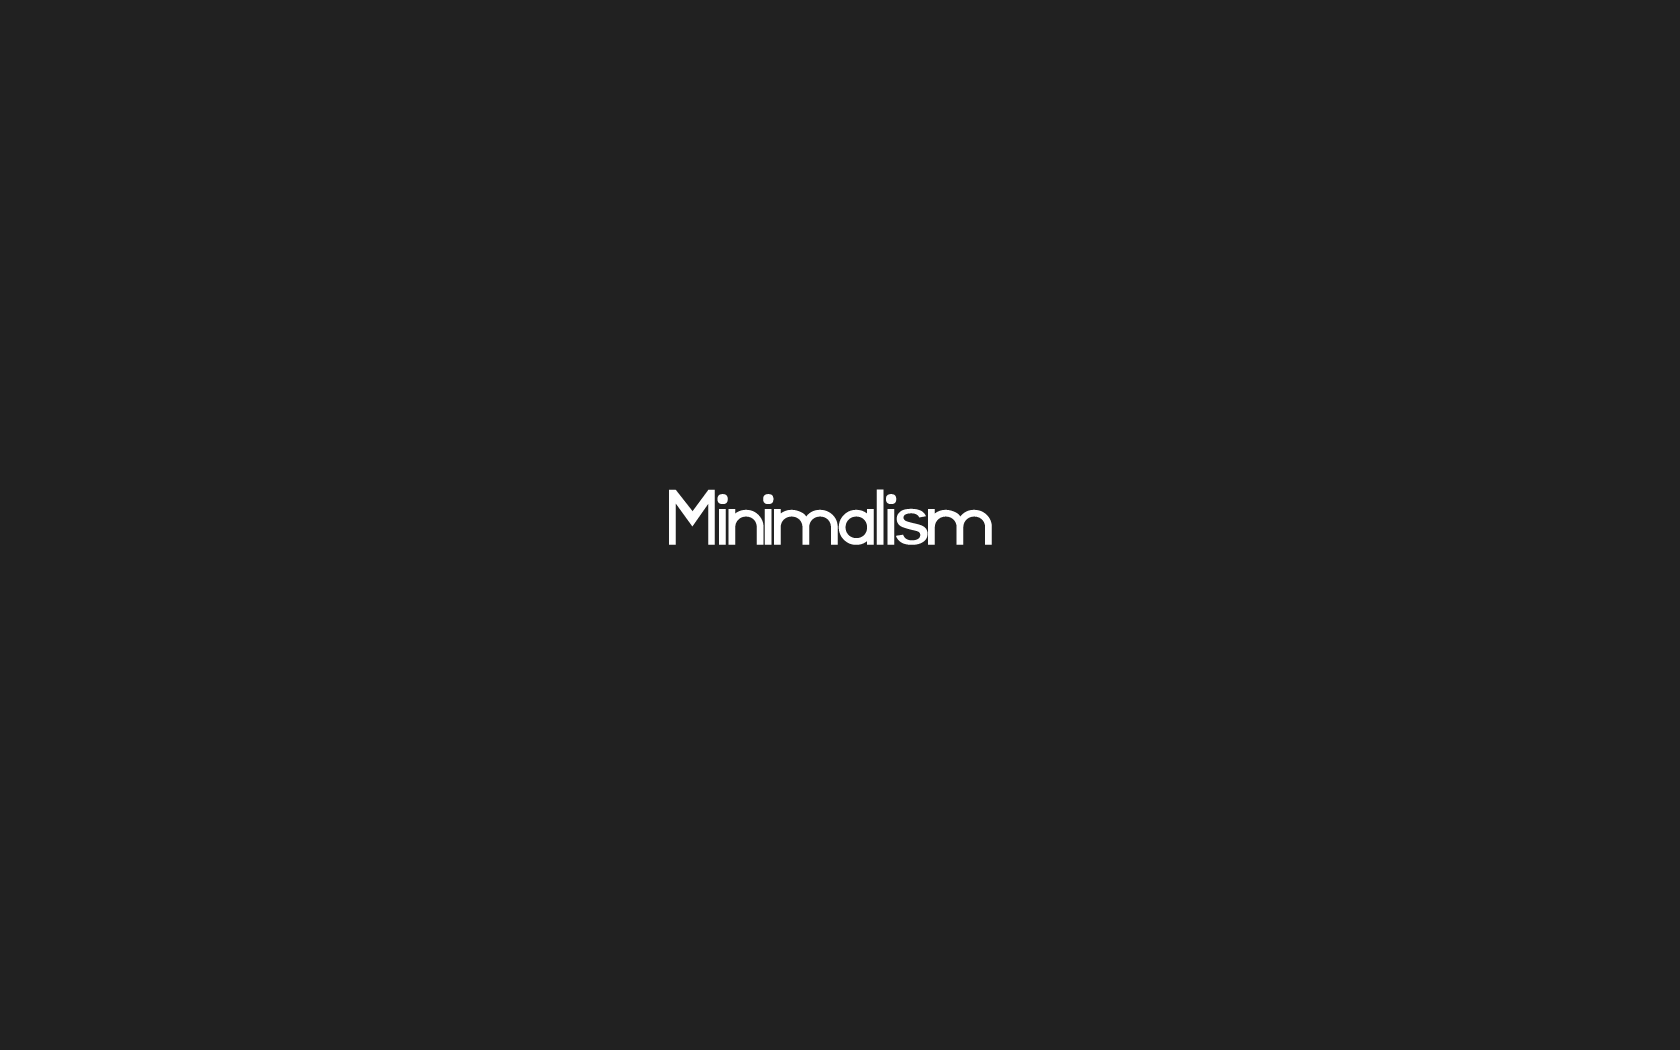 Minimalist iphone wallpaper tumblr - Funny Daily Minimalist Backgrounds